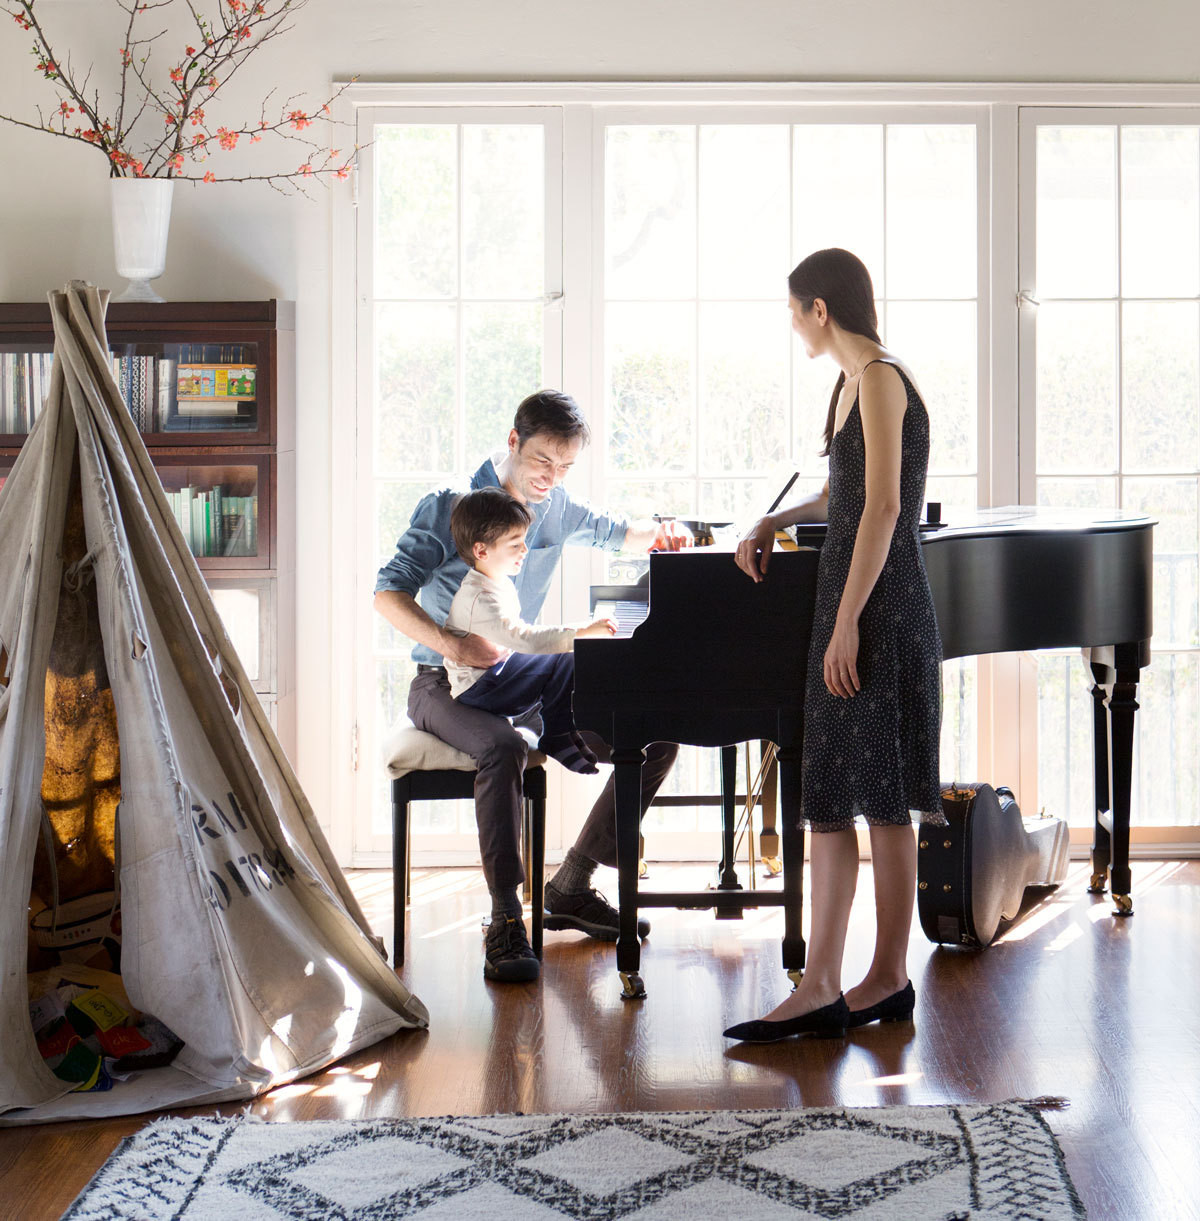 Andrew Bird, Katherine Tsina, and their son, Sam, in their Los Angeles residence.Prop styling by Britt Browne.